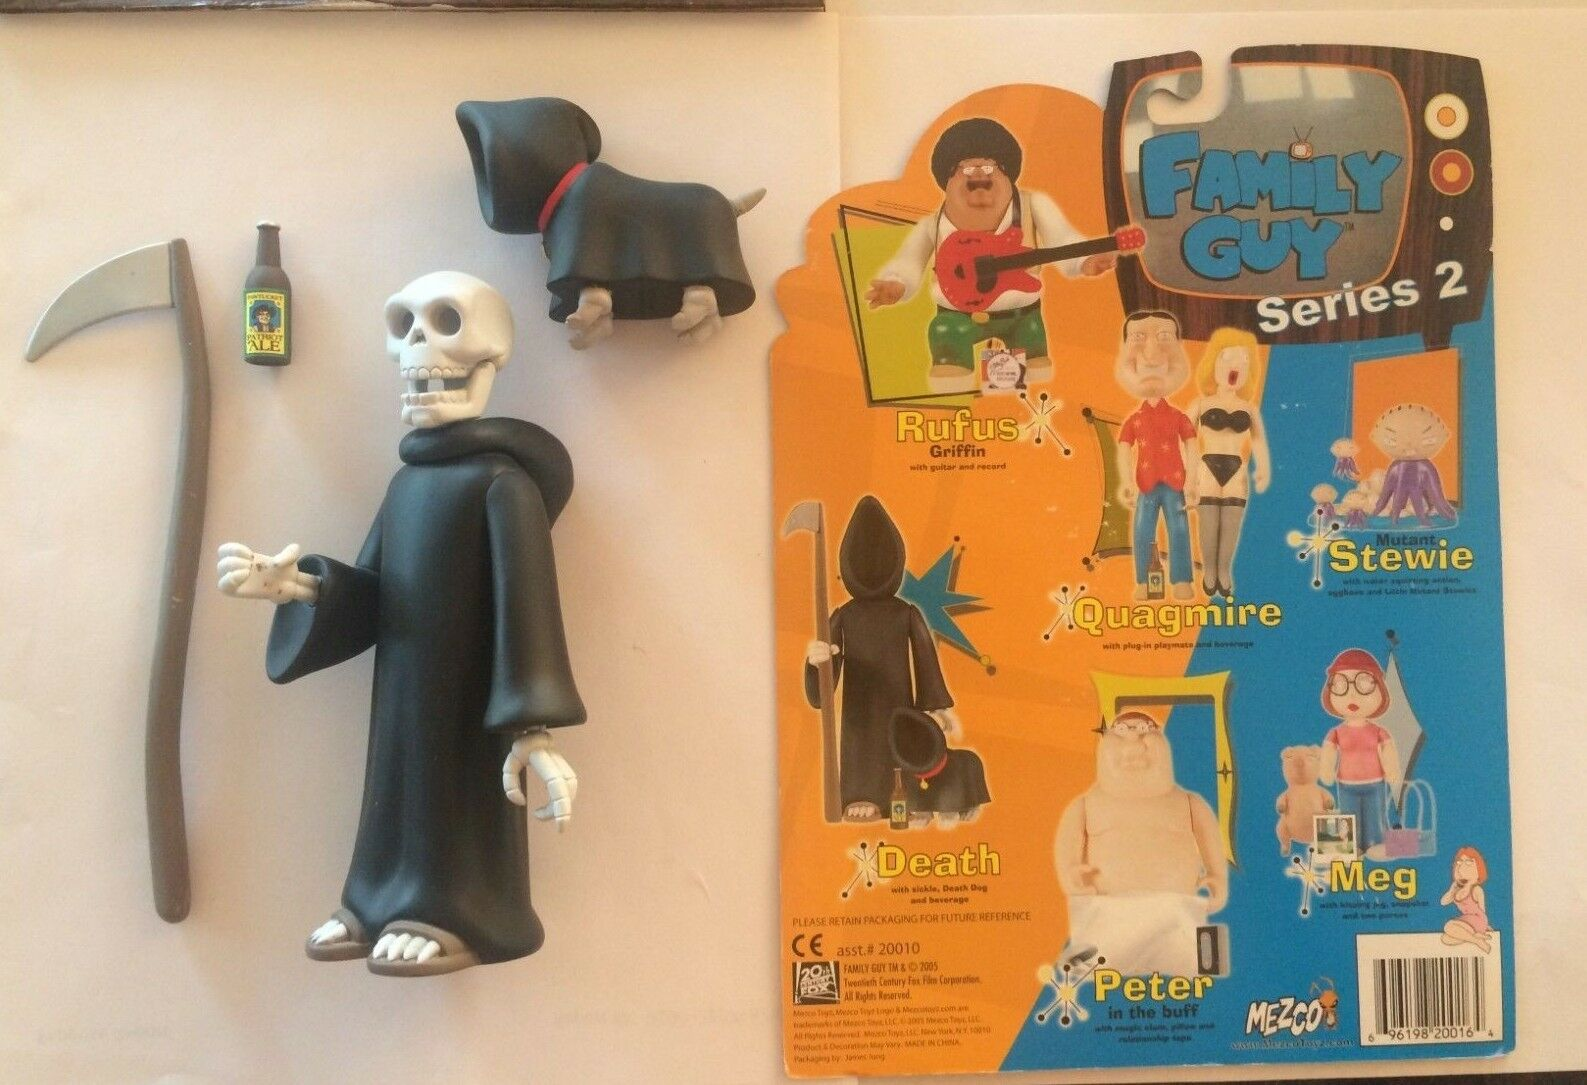 Mezco Family Guy Guy Guy series 7 DEATH (SKELETON SKELETAL VARIANT)  loose + complete 35a531